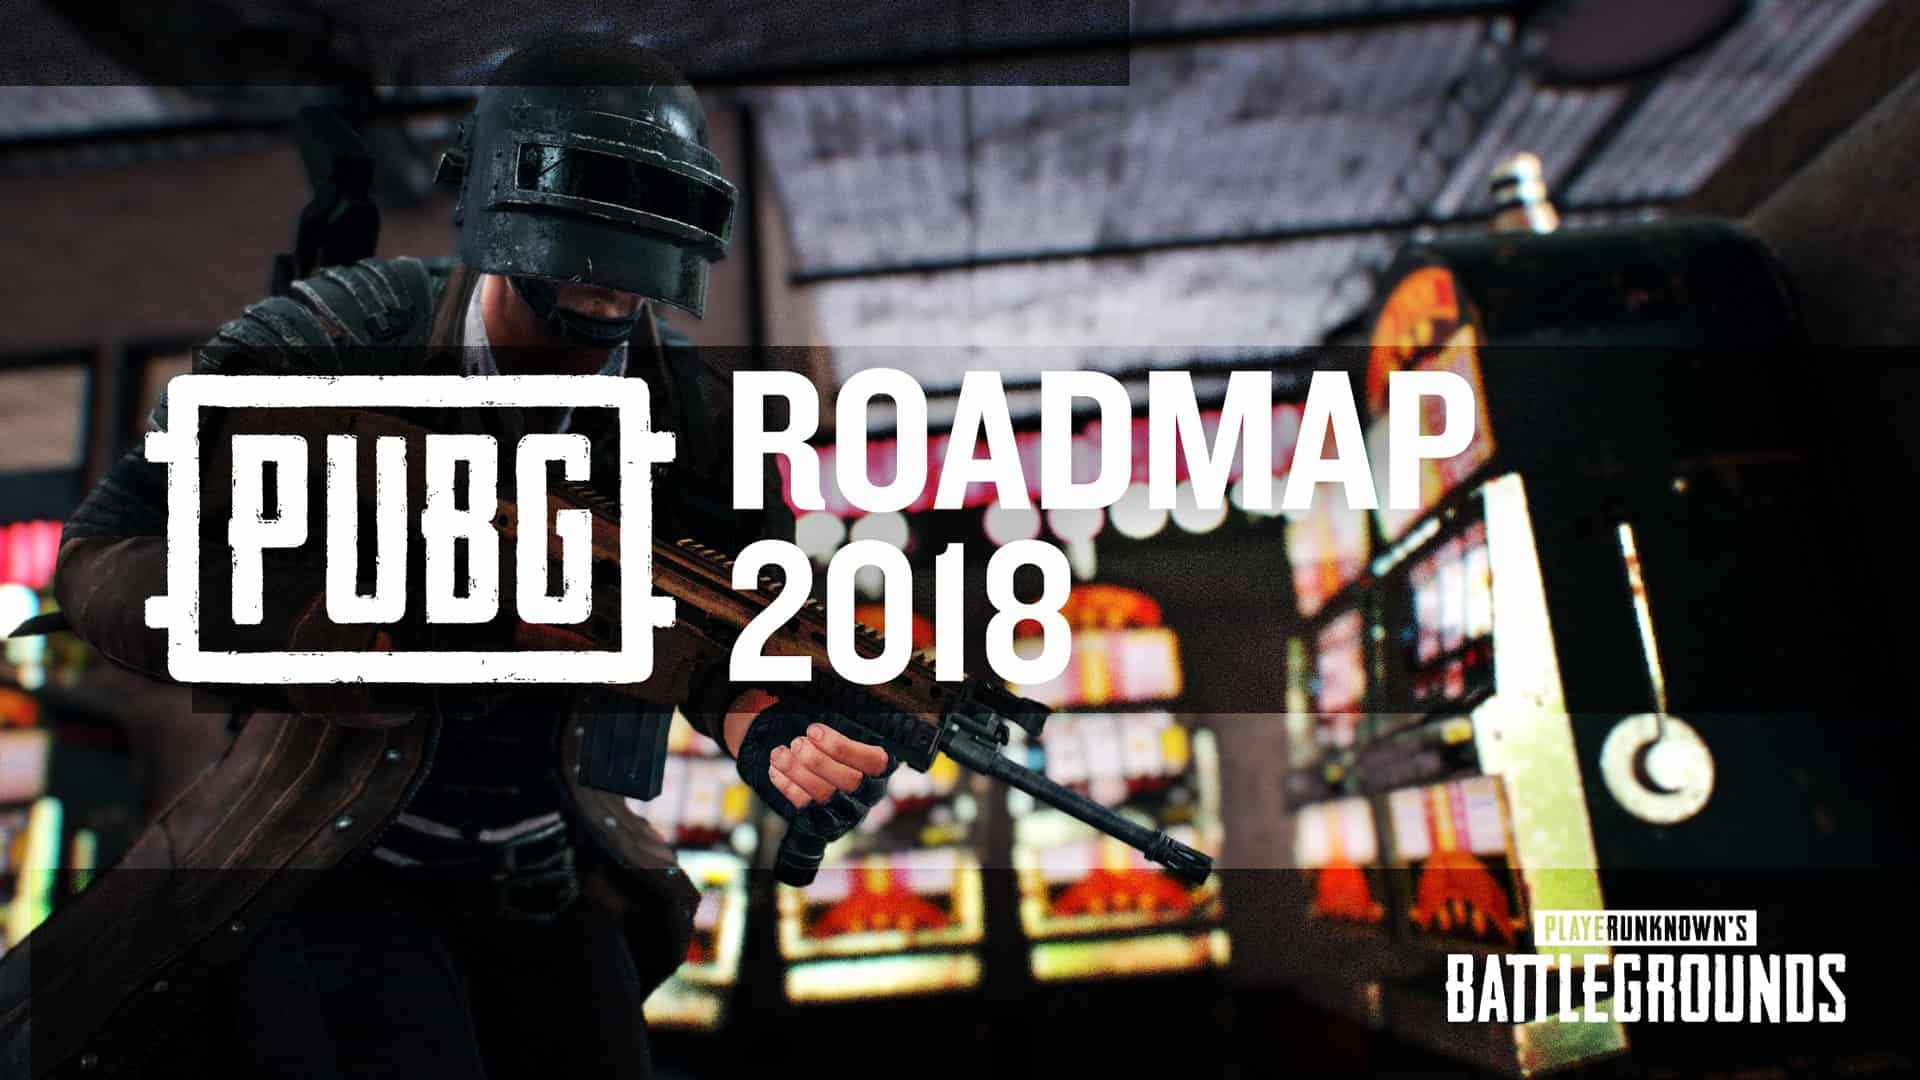 PUBG Roadmap 2018 Details New Smaller Map Emotes & More